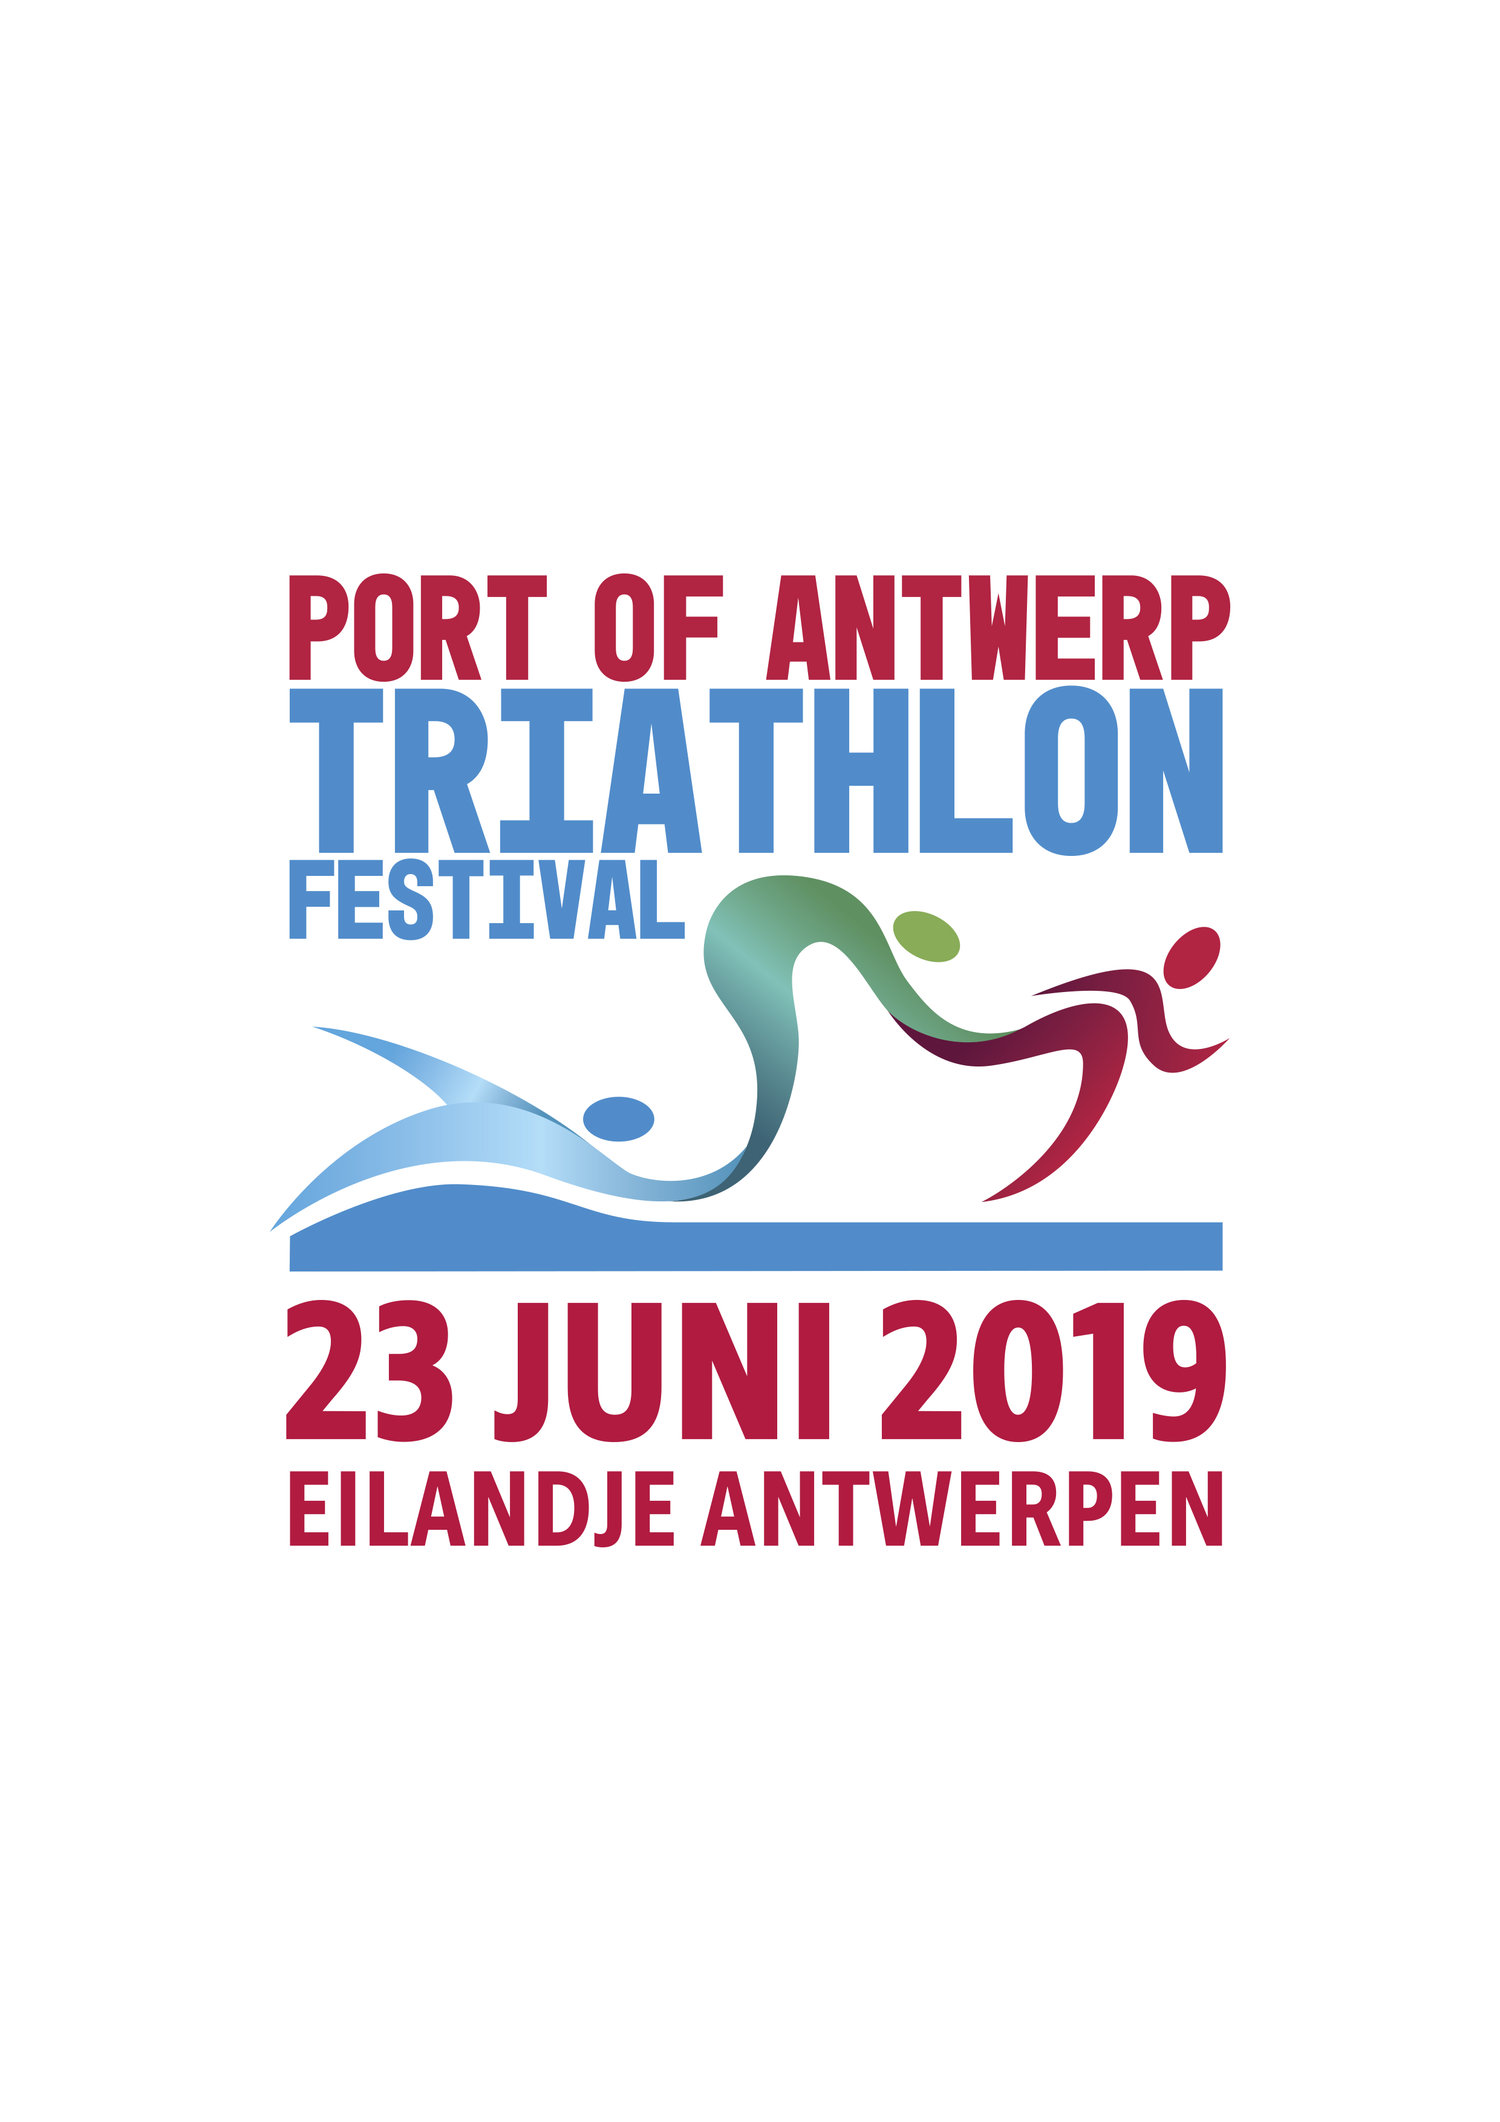 Antwerp Triathlon